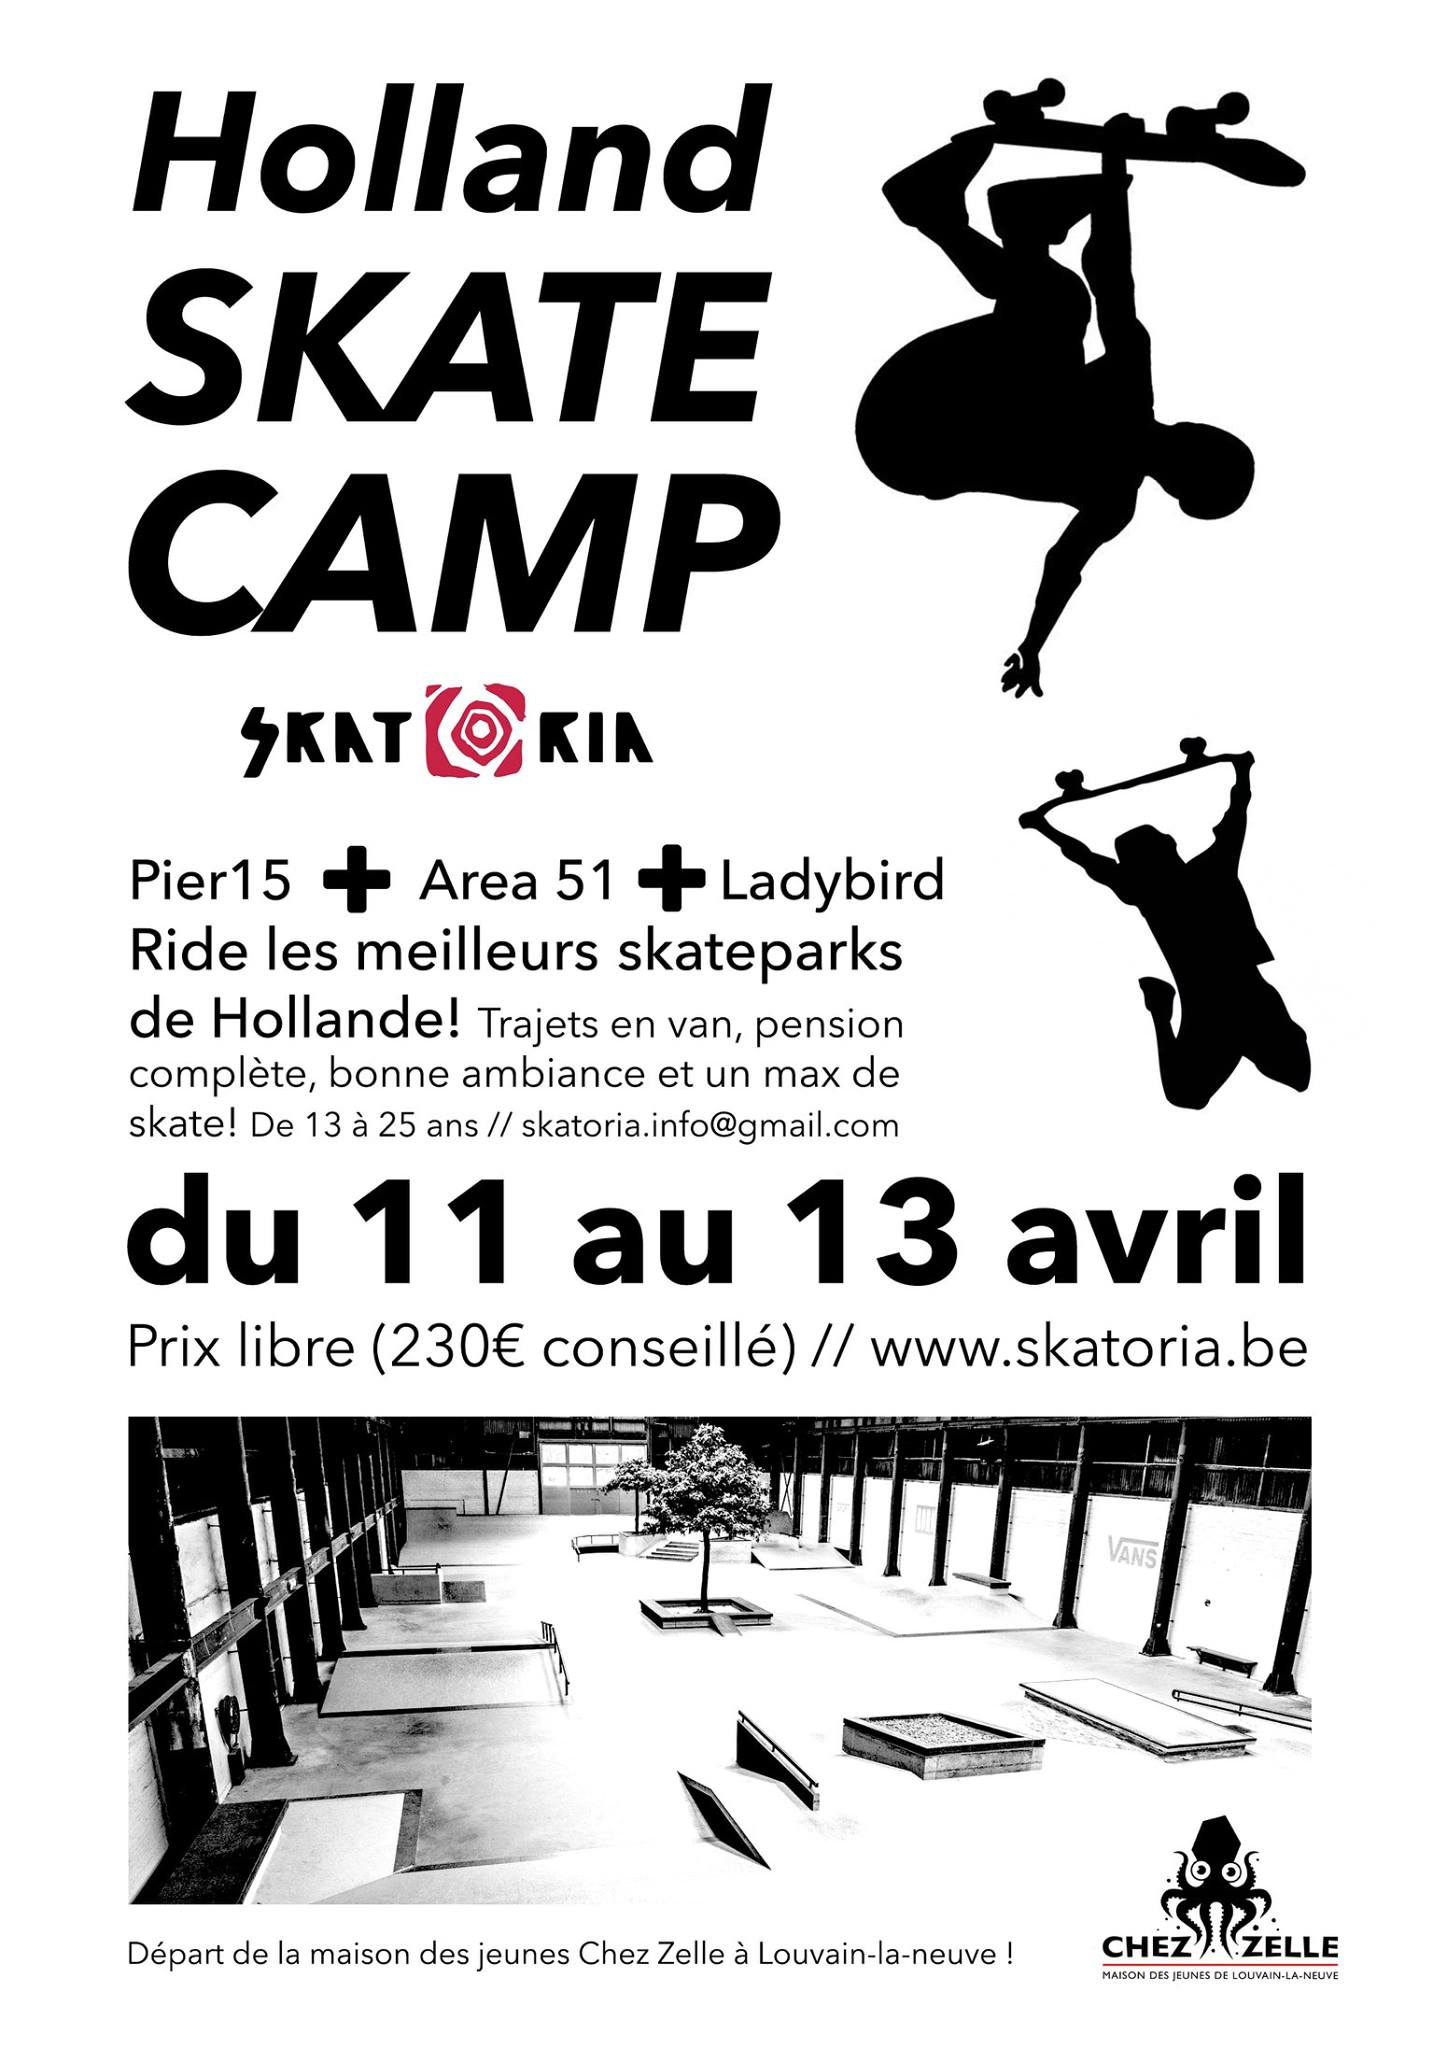 Holland Skate Camp 2017